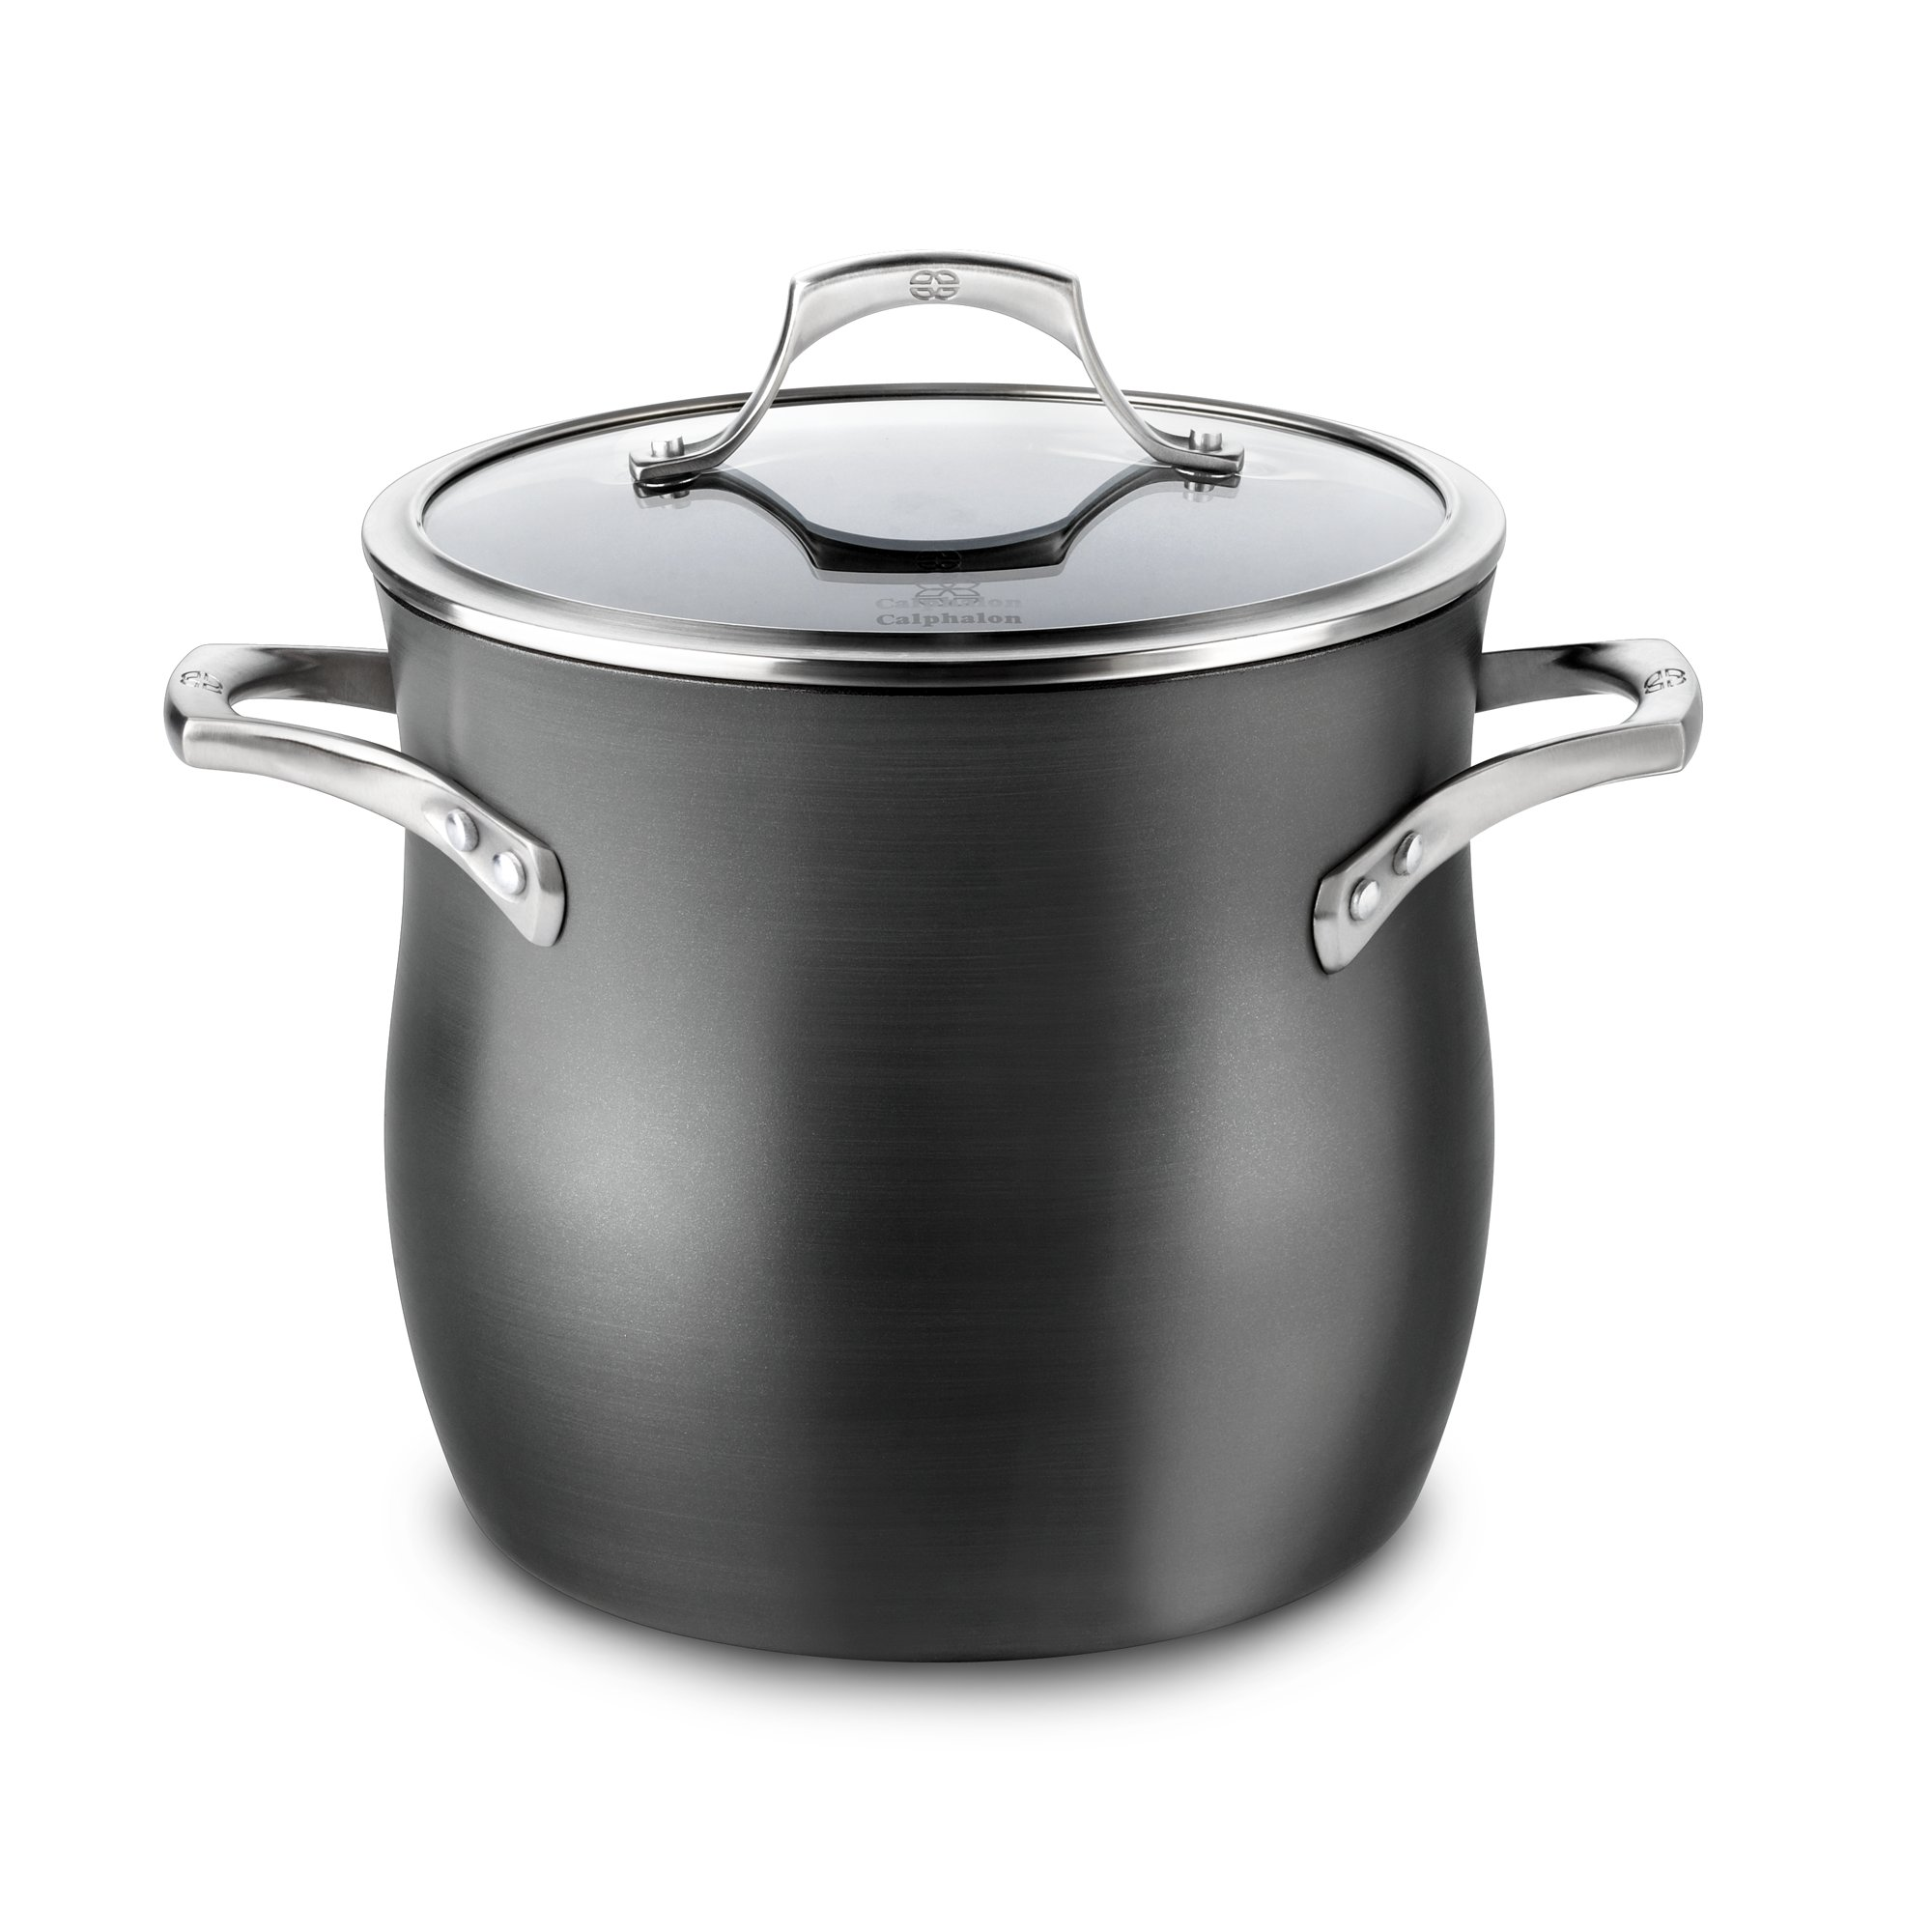 Calphalon Unison Nonstick 8-qt. Stock Pot with Cover